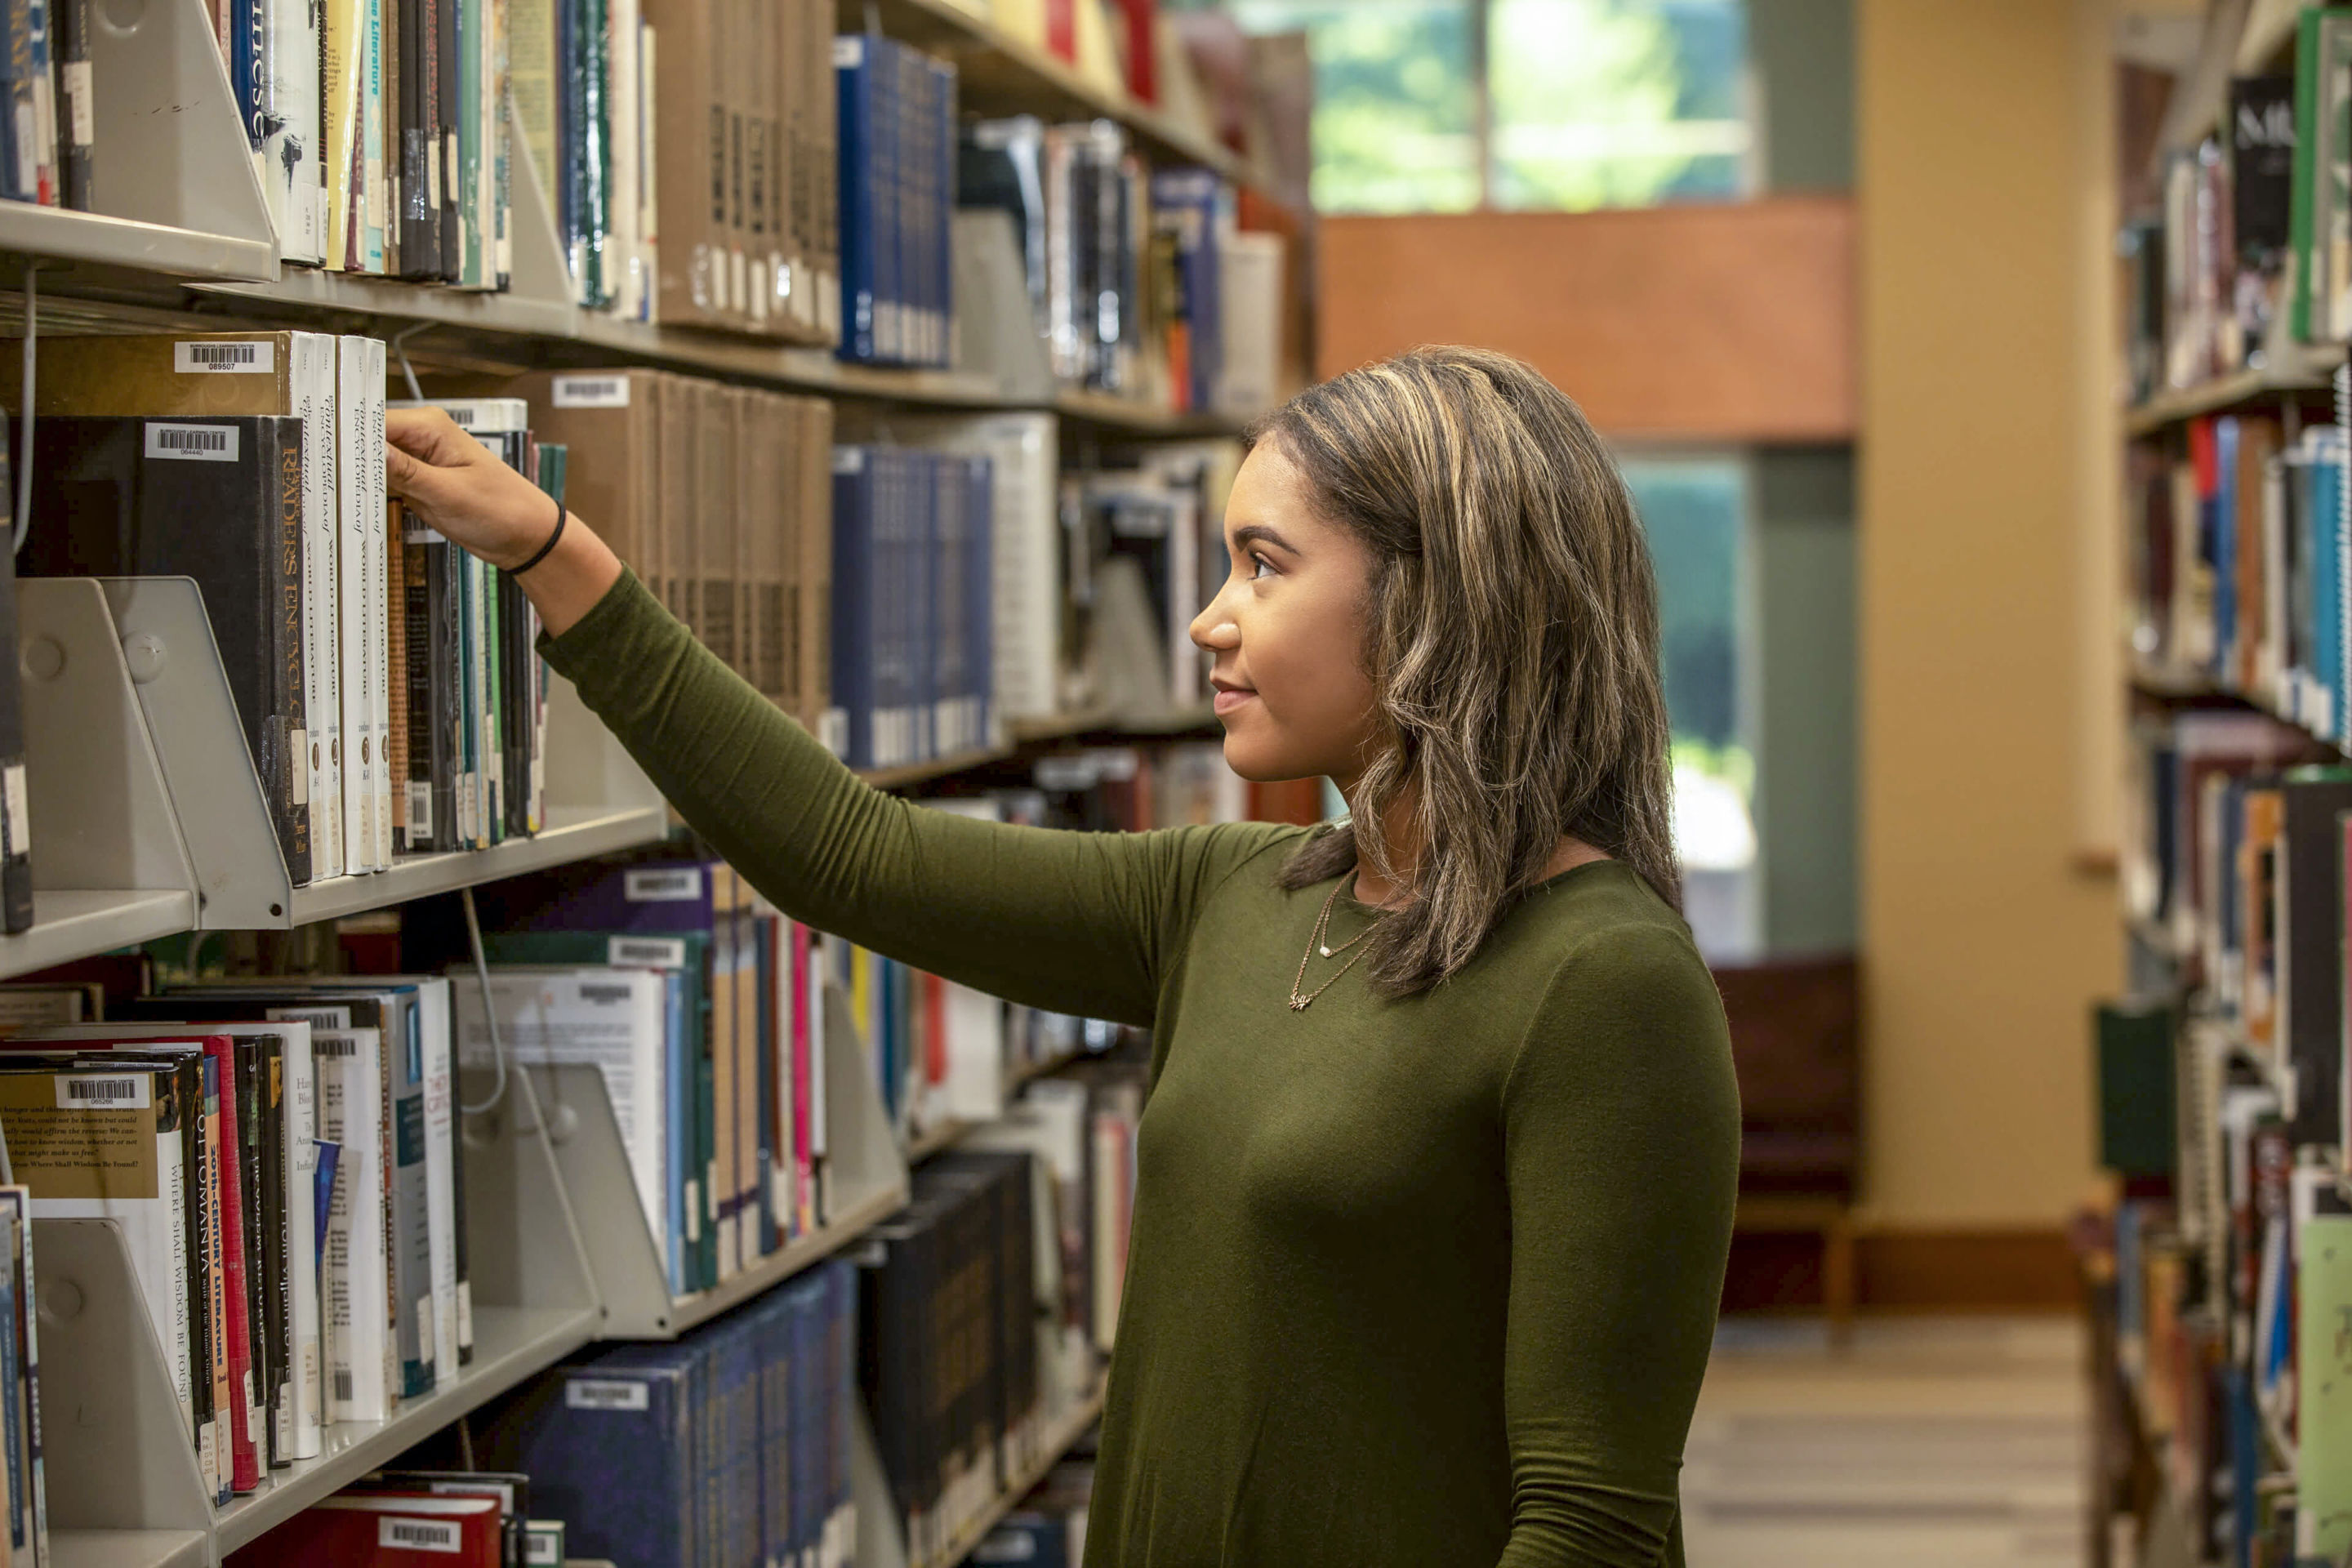 a female student searches for a library book